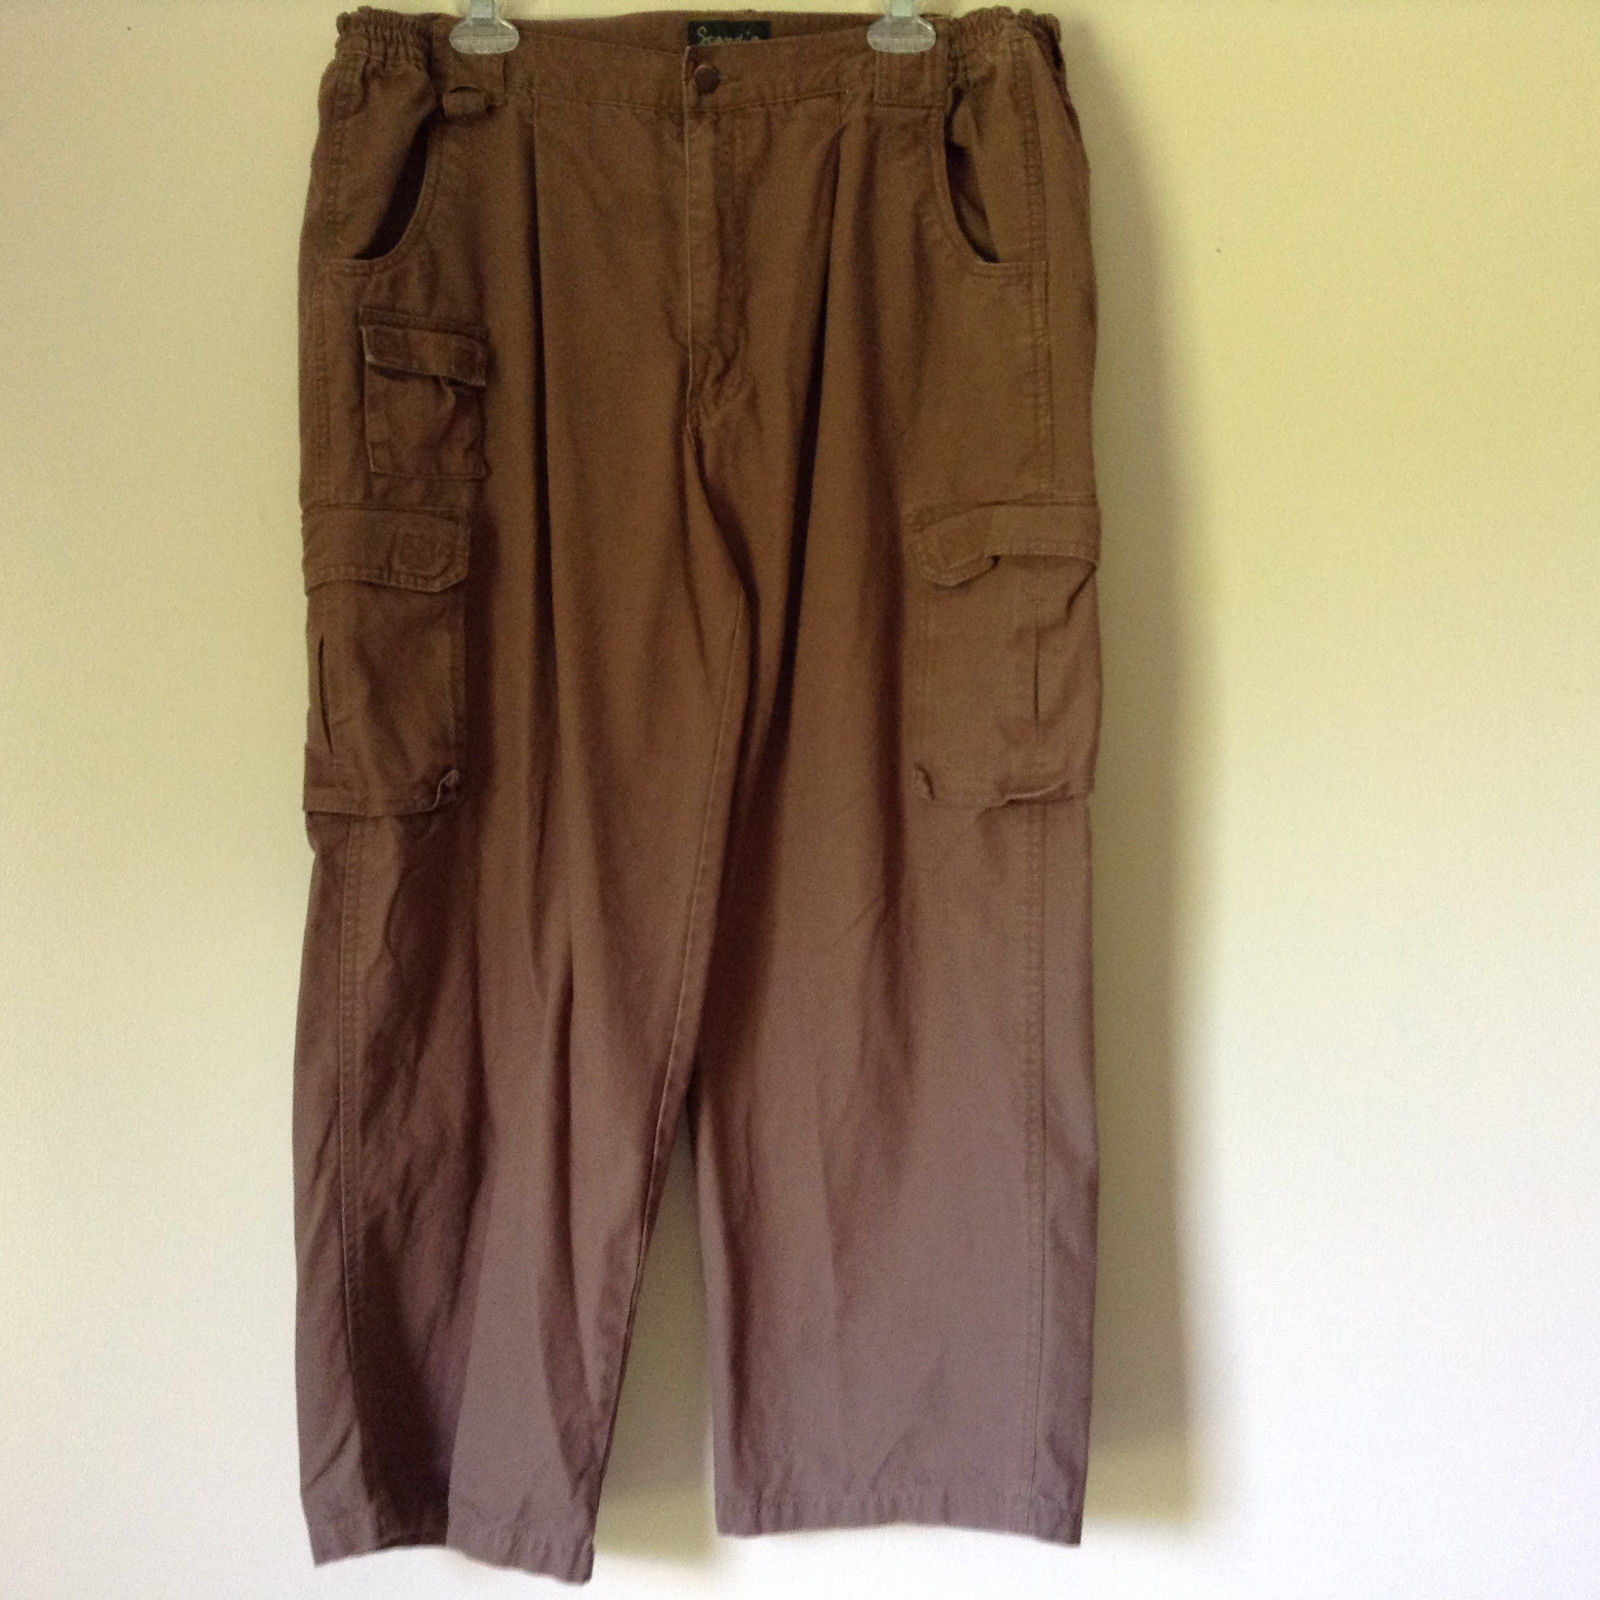 Brown Pants by Scandia Woods 100 Percent Cotton Lots of Pockets Size 40S